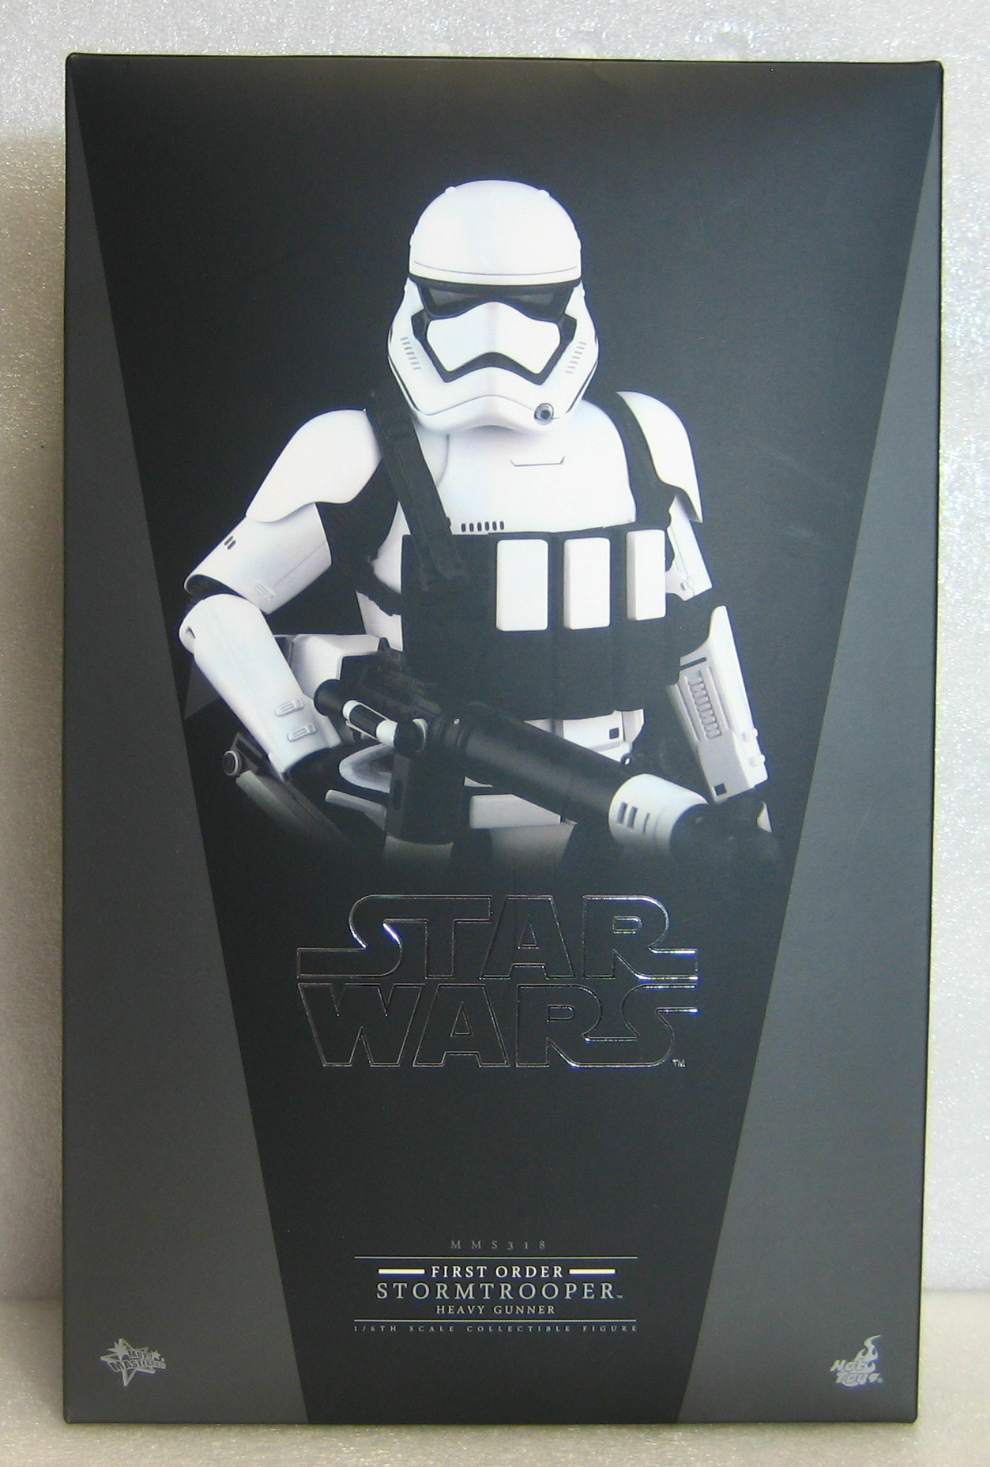 Hot Toys Star Wars First Order Heavy Gunner Stormtrooper 1:6 Scale Figure